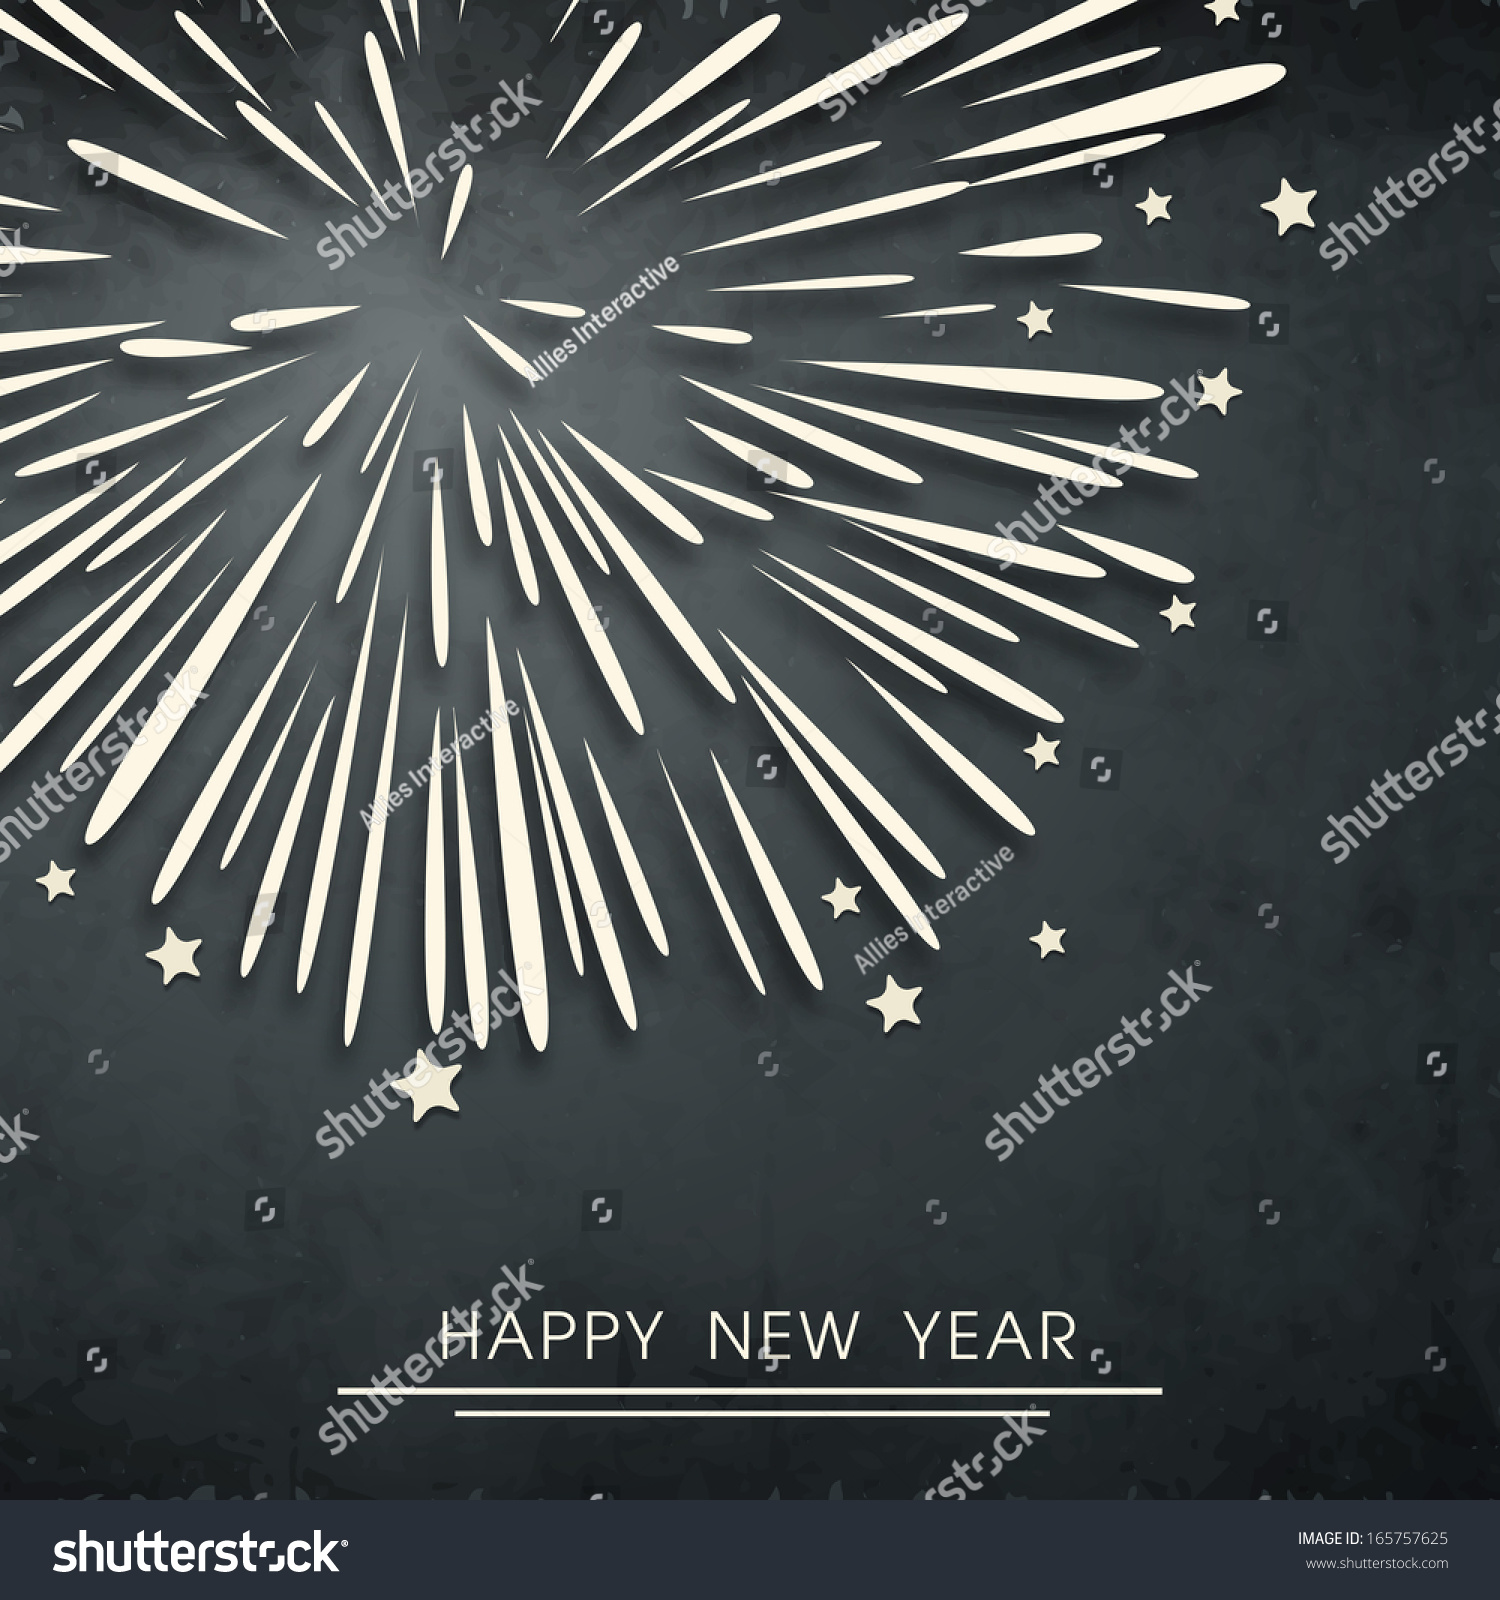 Happy New Year 2014 Celebration Flyer Stock Vector 165757625 ...